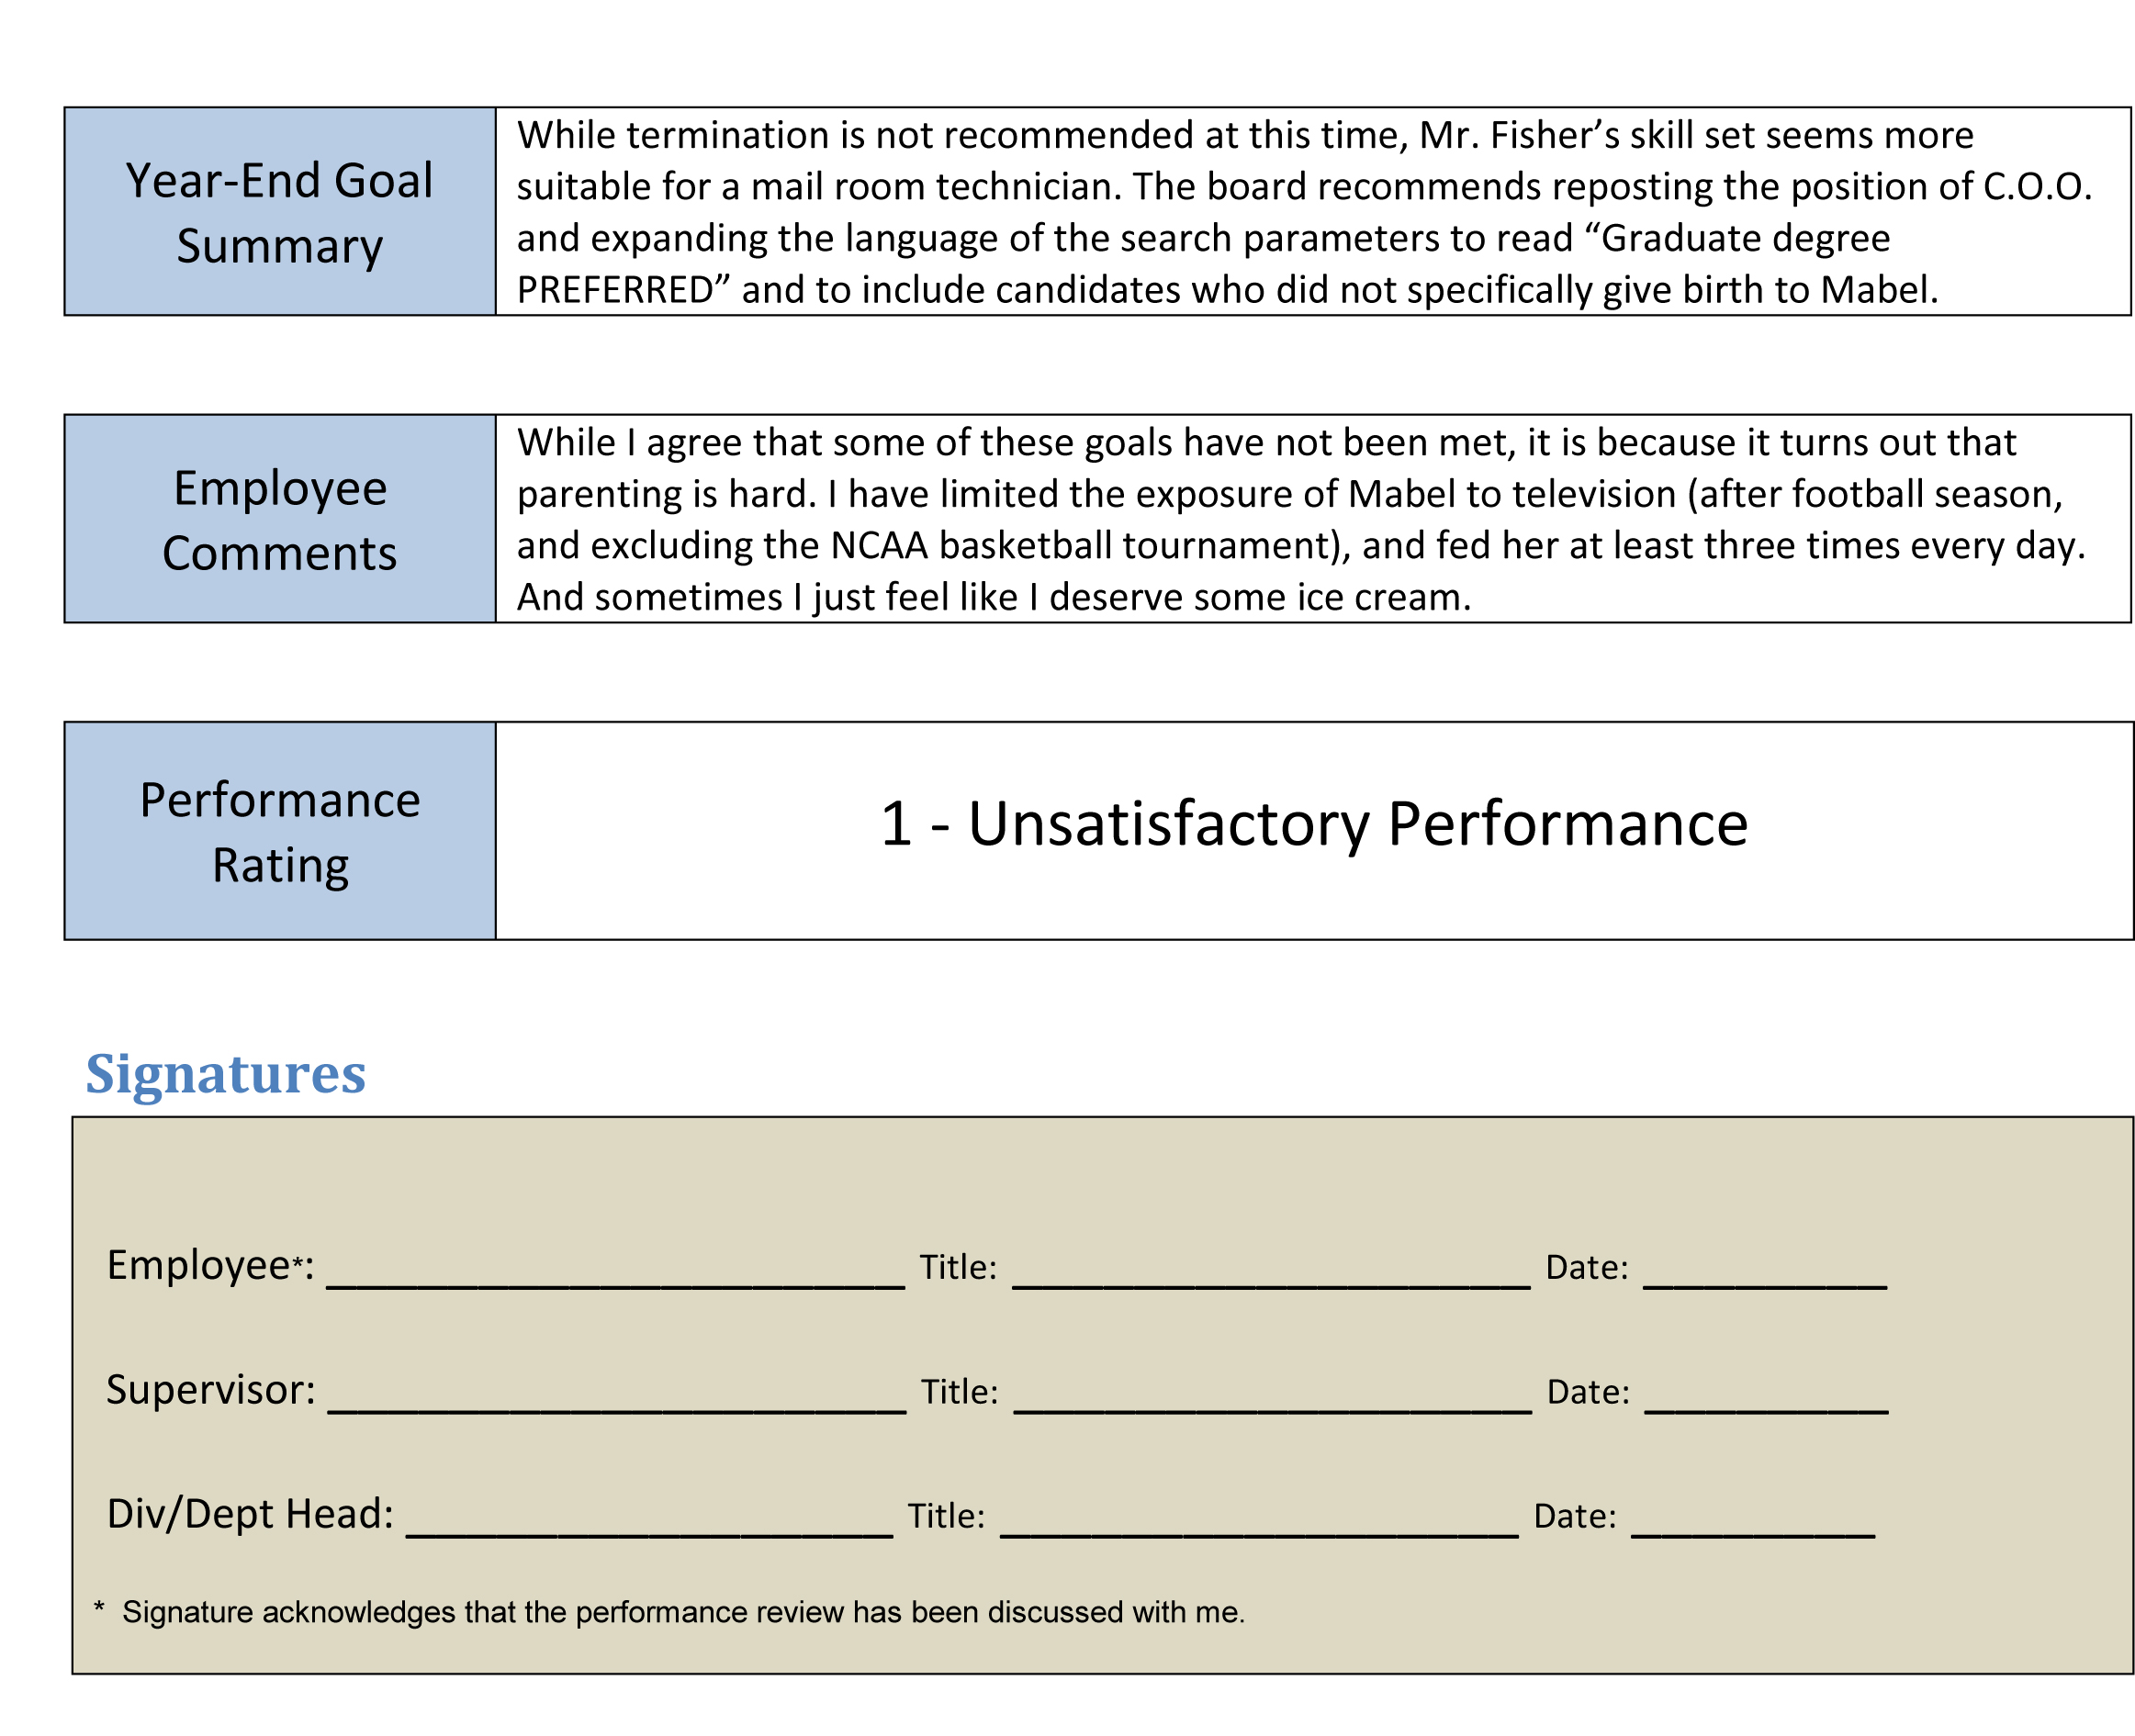 MabelCorp Performance Evaluation Form-3